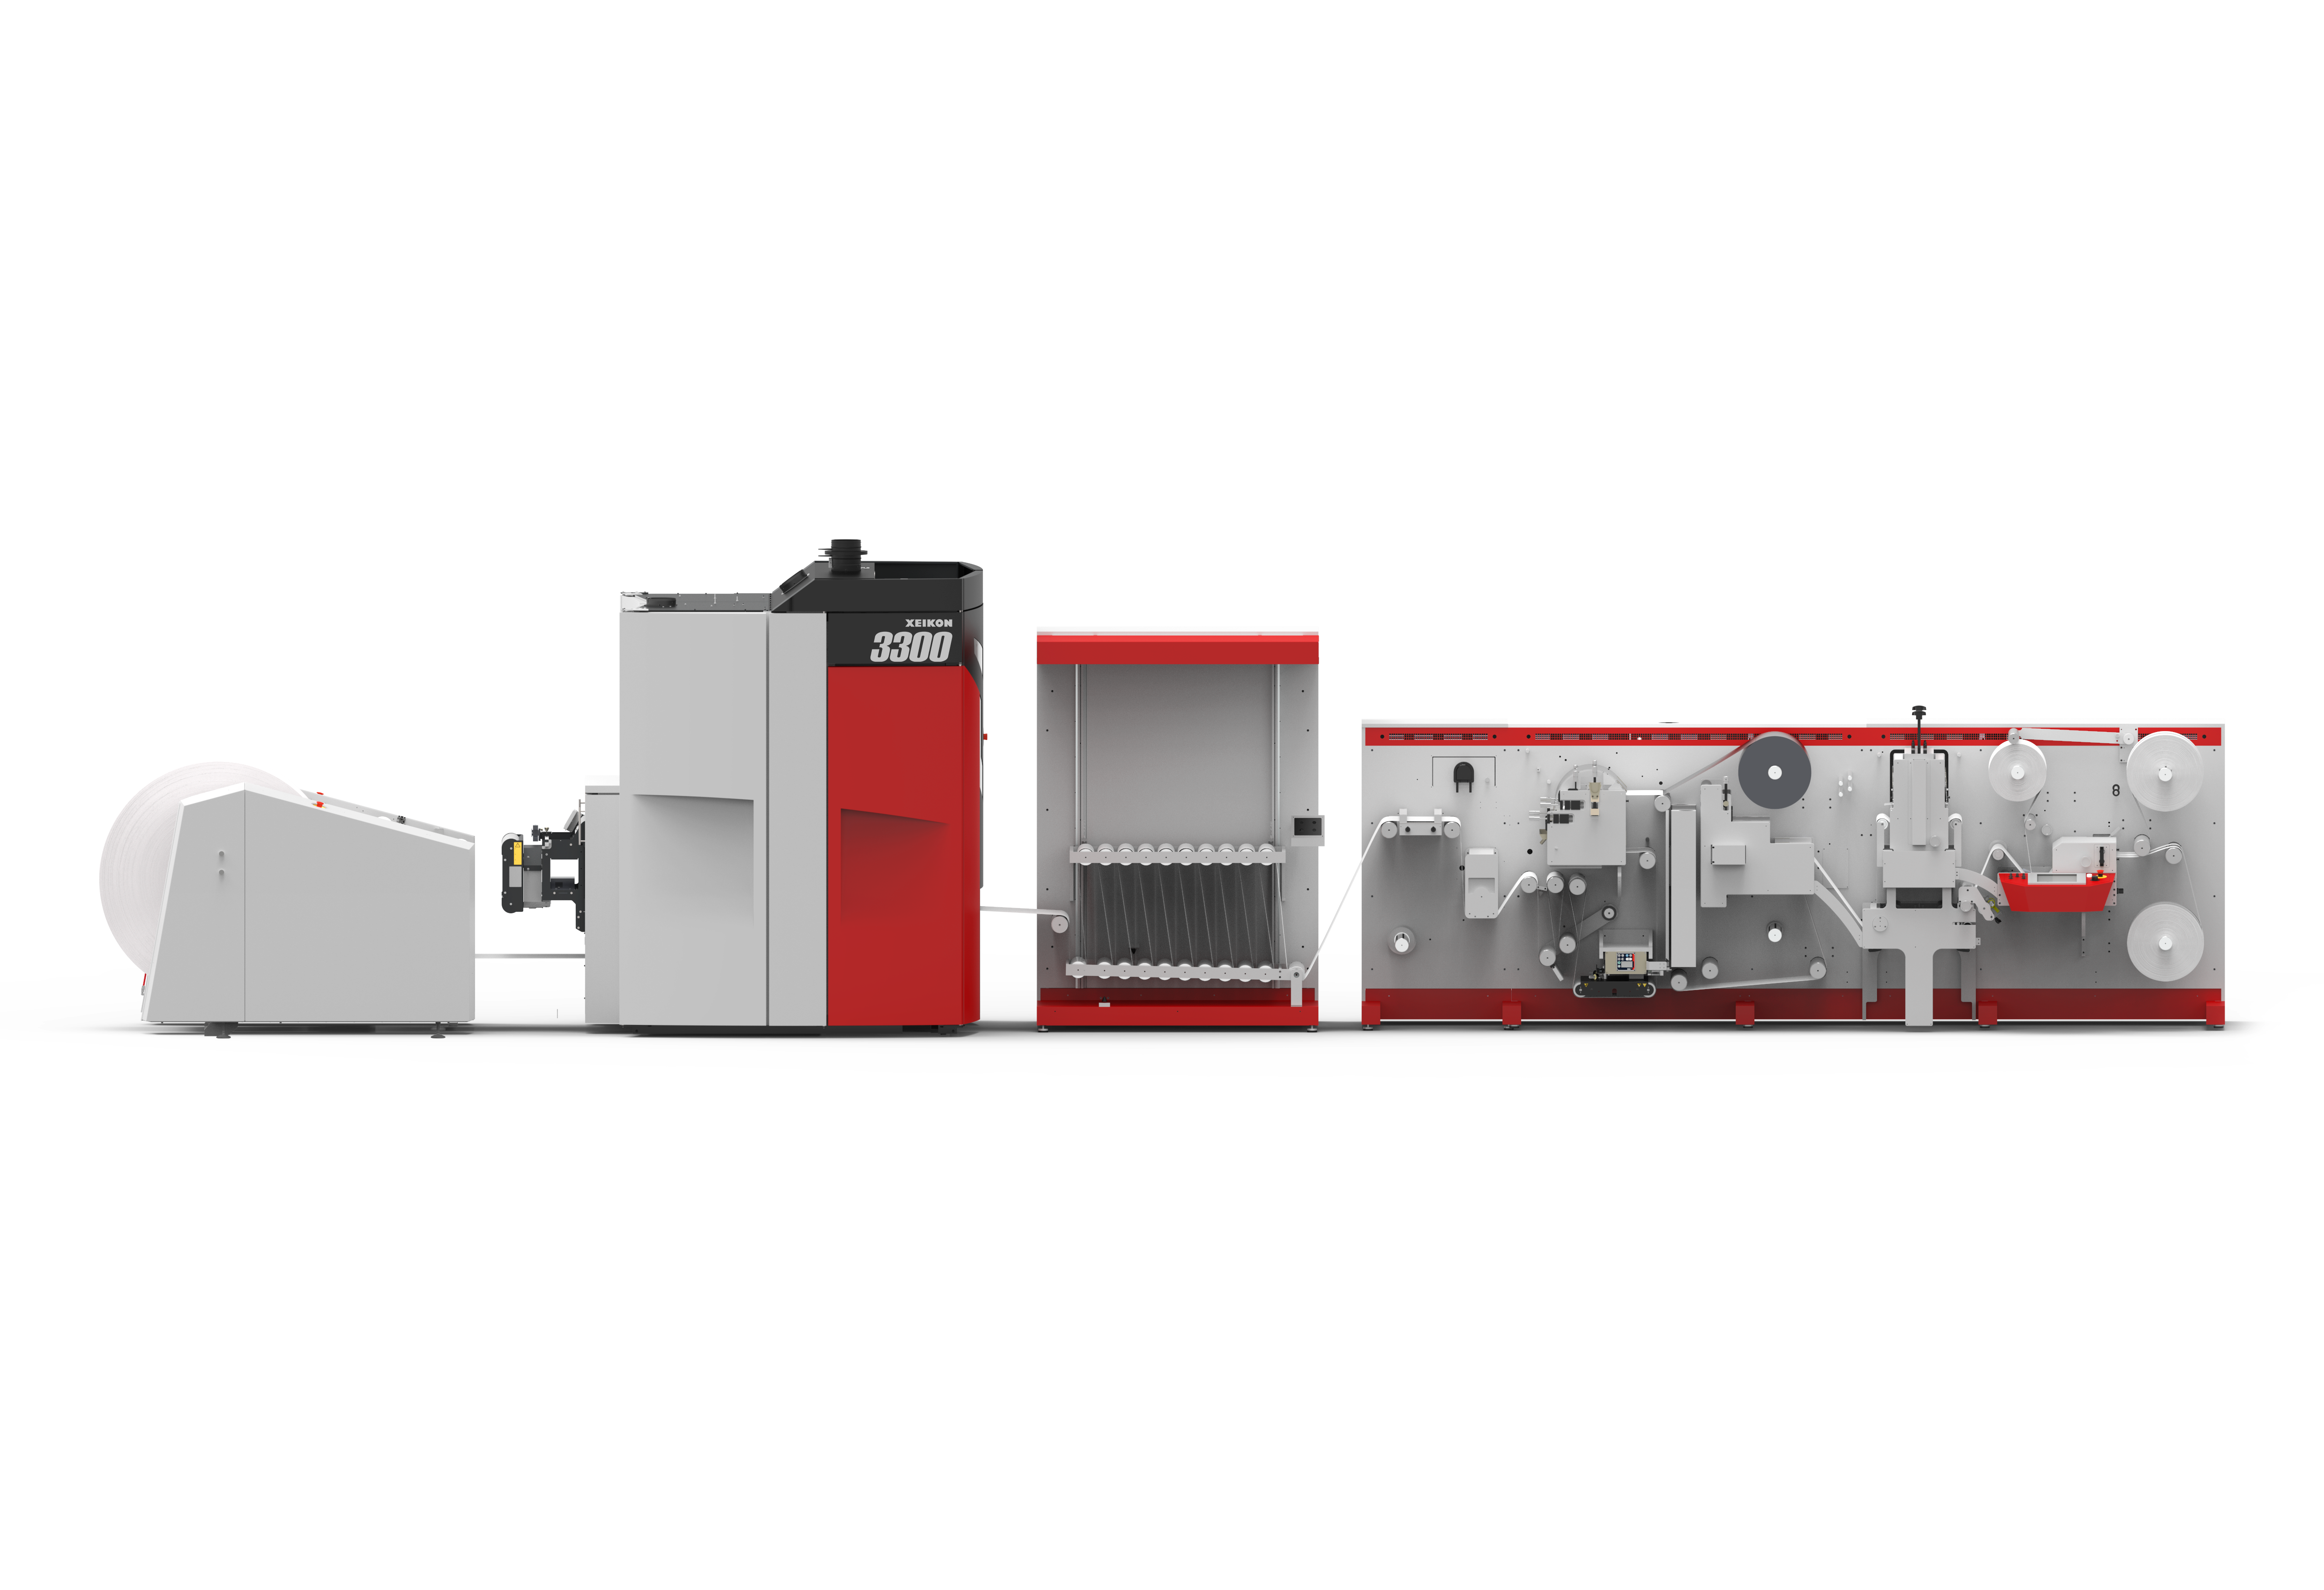 Digital production solution with a Xeikon 3300